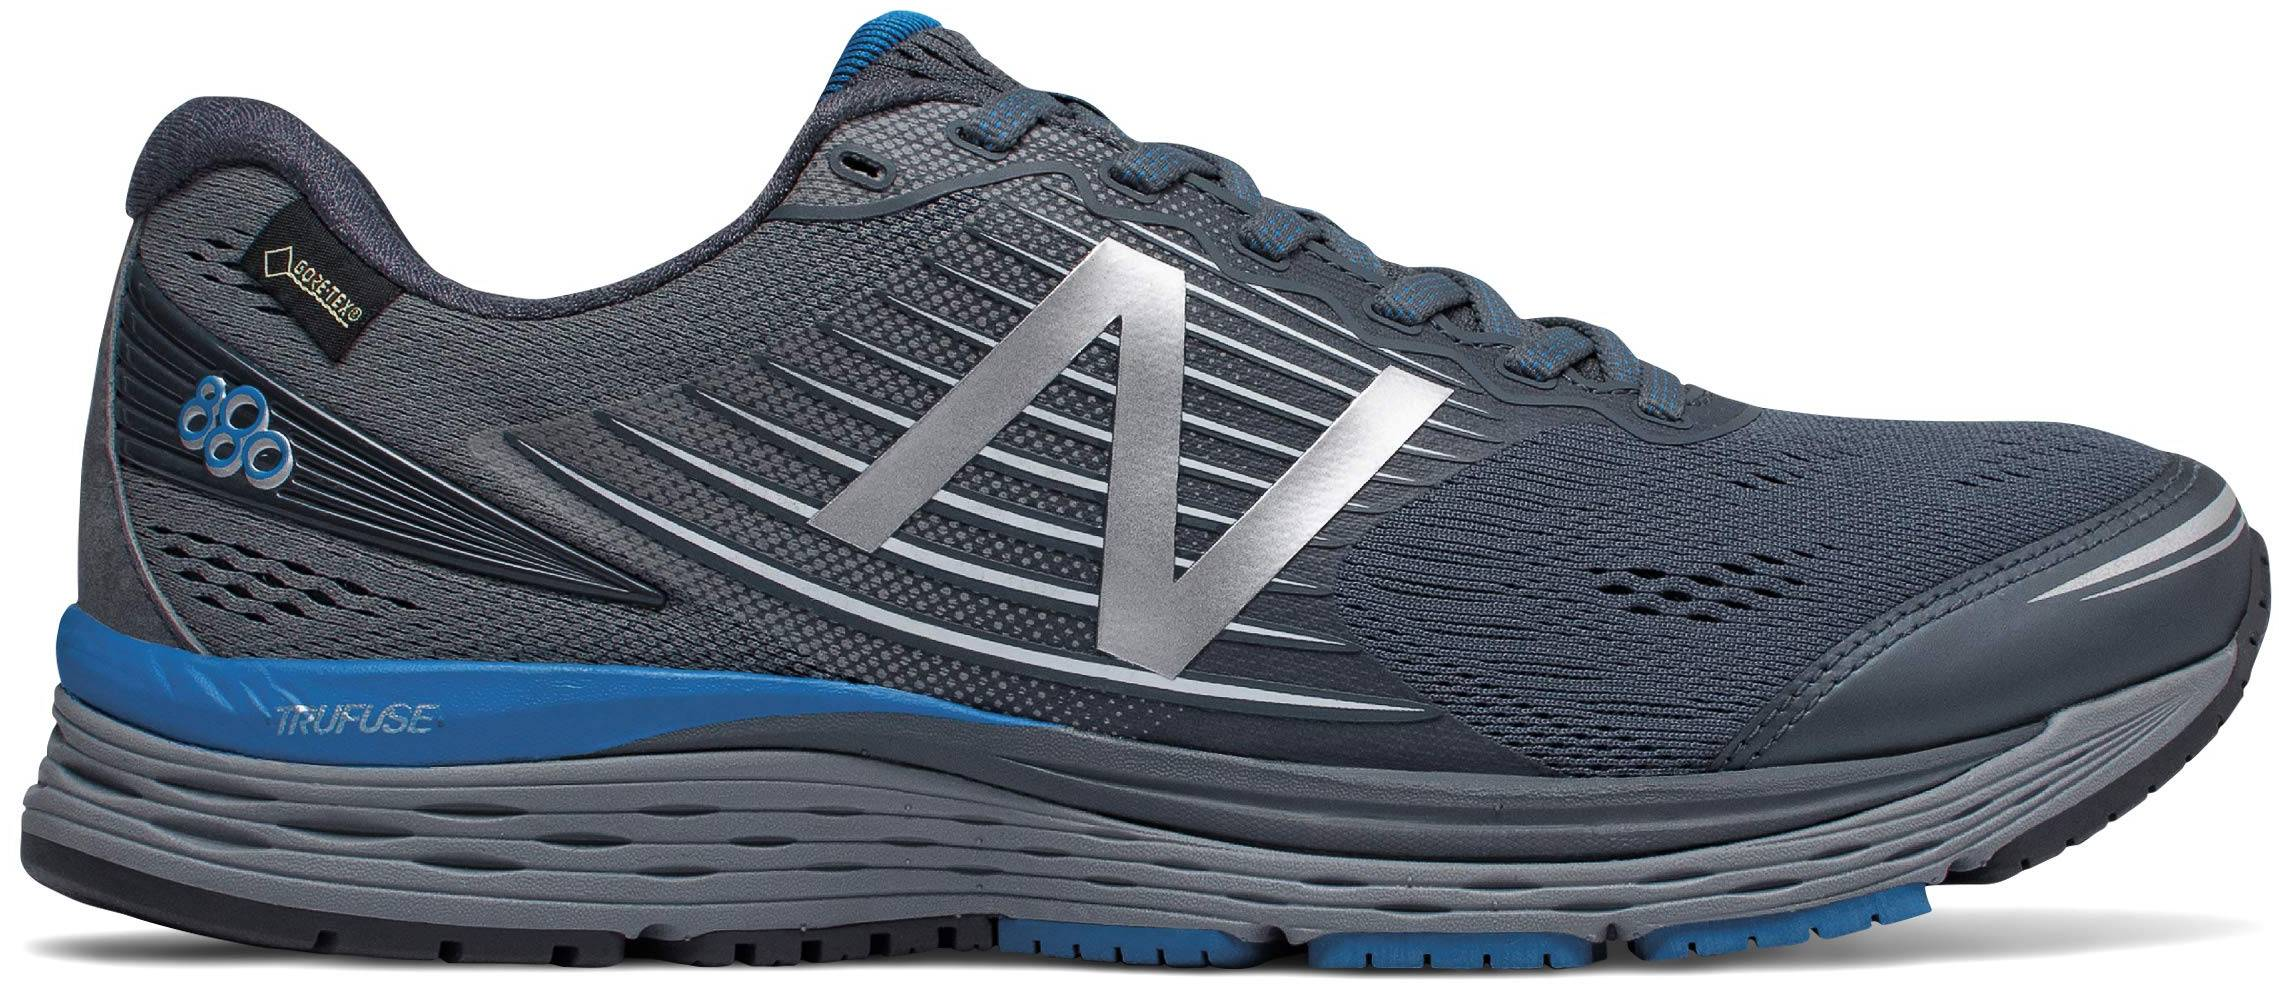 absceso Rectángulo collar  7 Reasons to/NOT to Buy New Balance 880 v8 GTX (Jan 2021) | RunRepeat